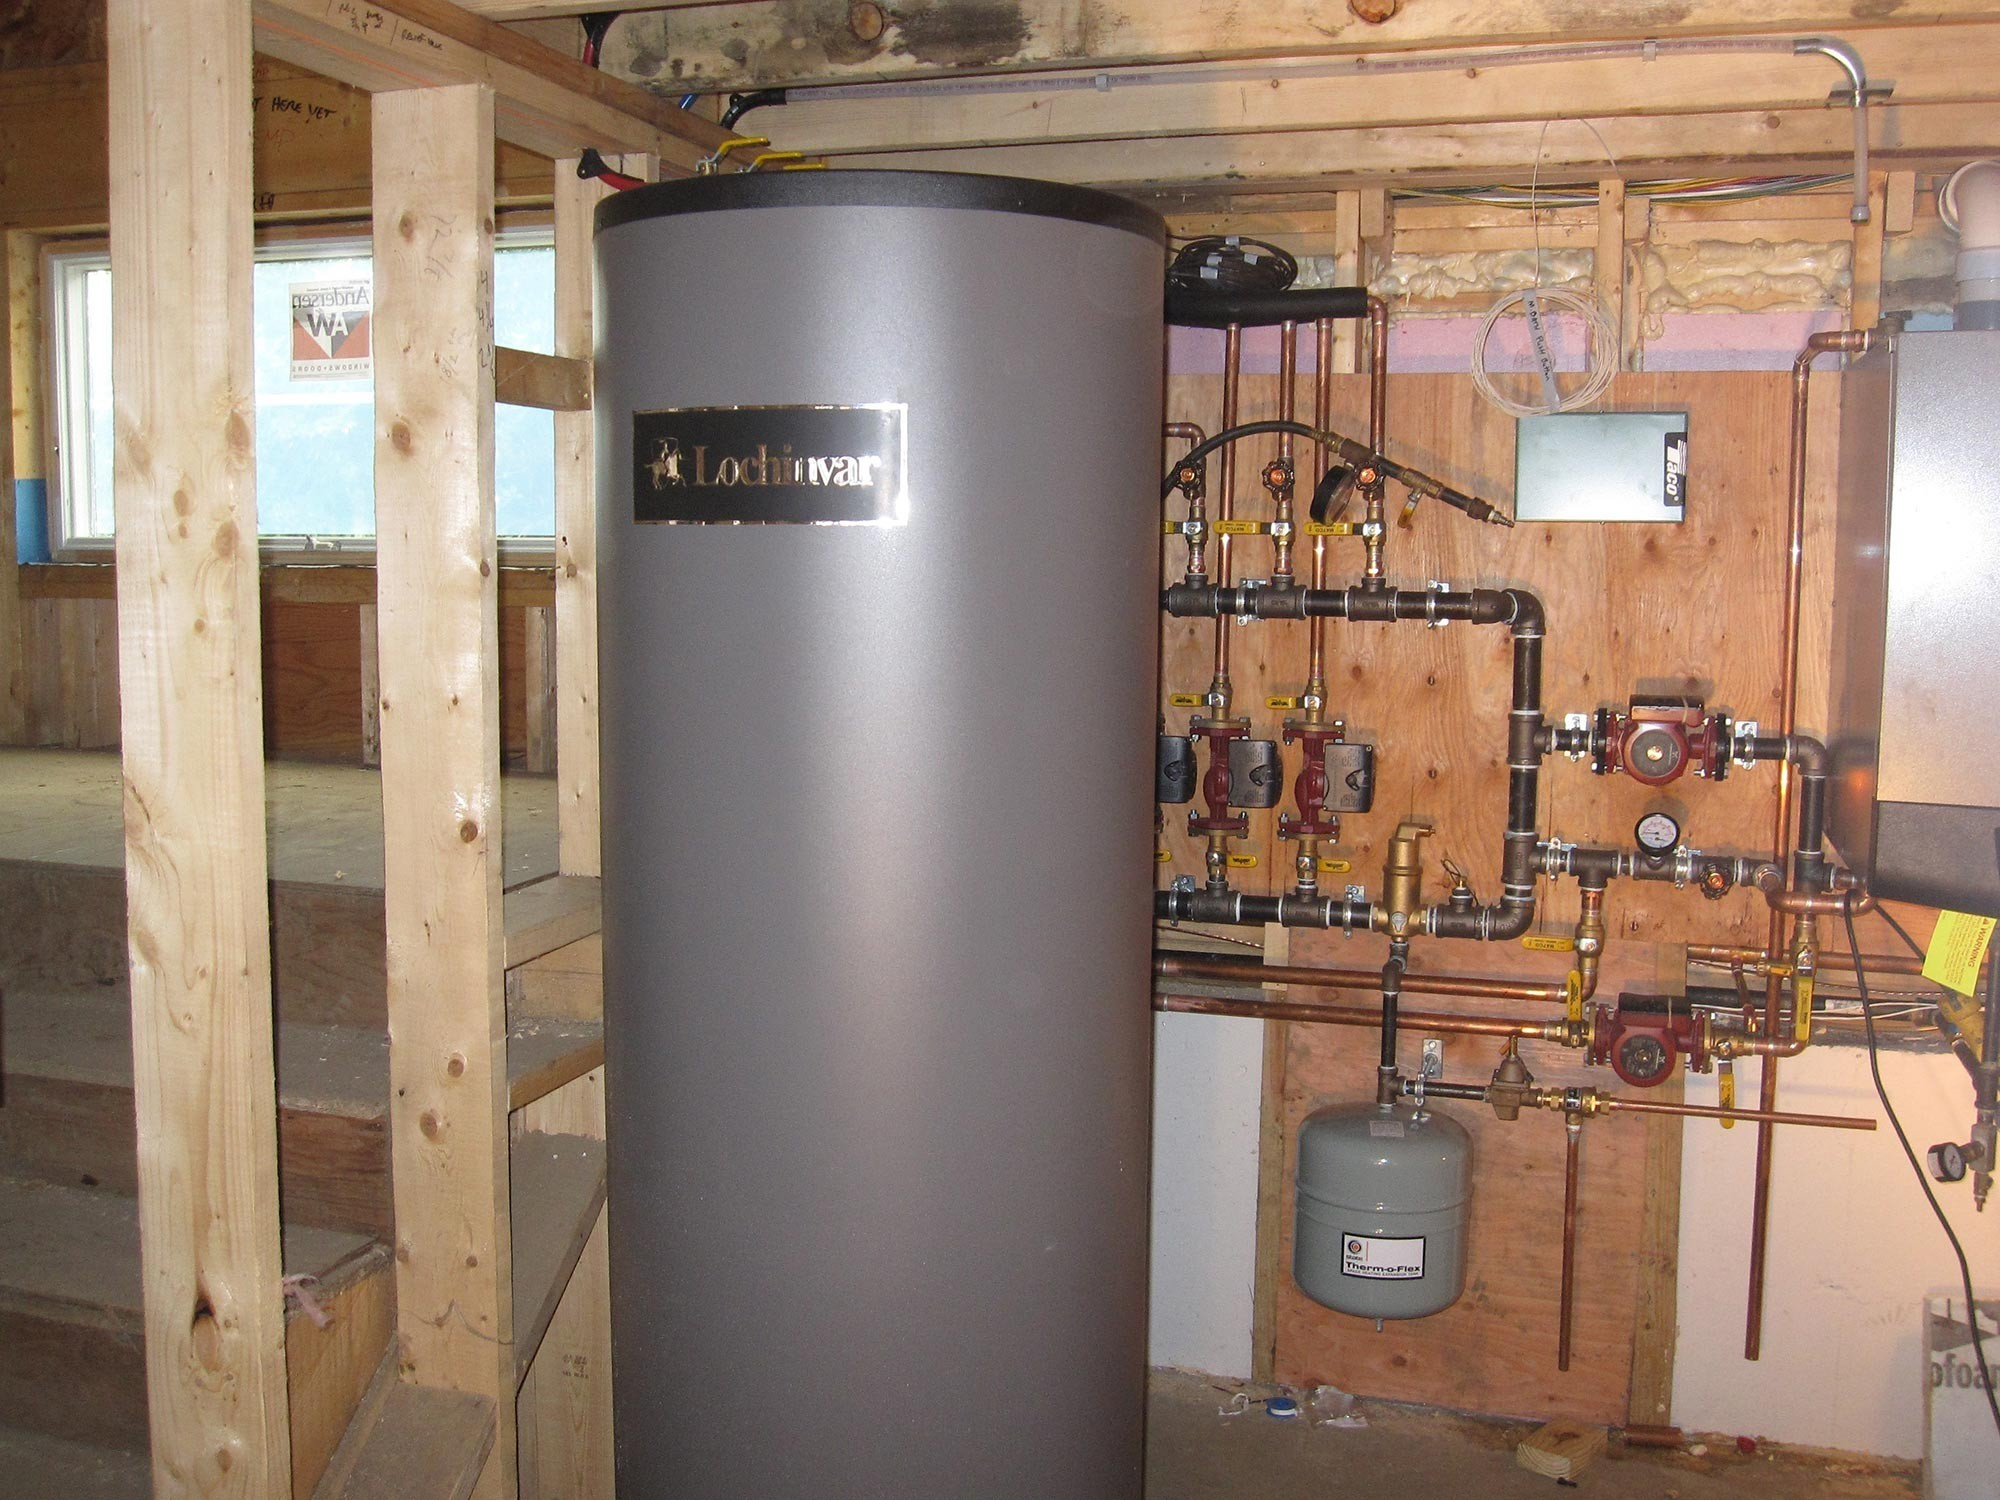 Wall Mounted High Eff FHW Gas Boiler with Indirect HW Tank